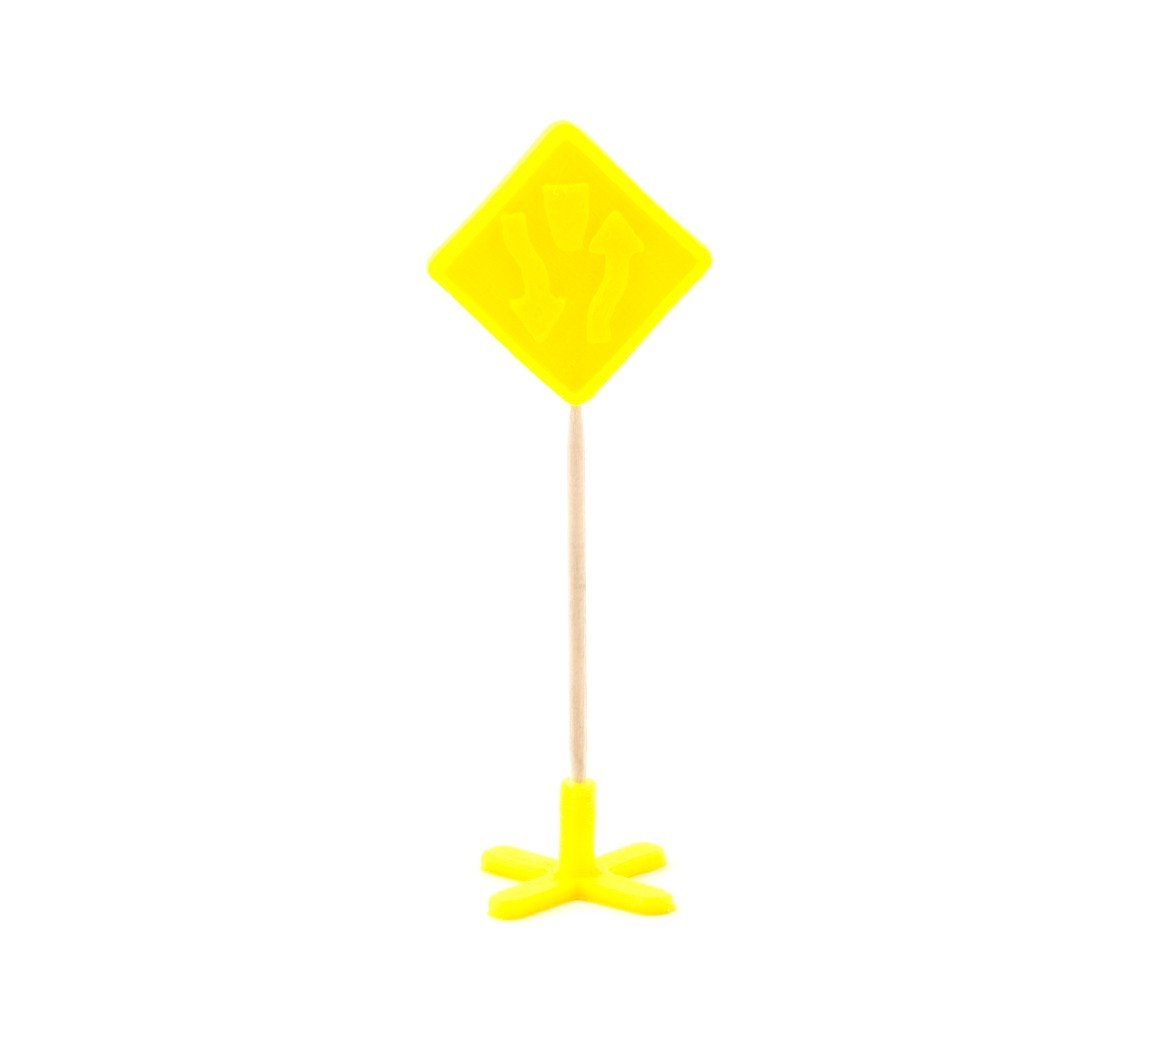 dad355512933513adea5ab2c47ce22d6_1449531087071_11.20.15-product-shoot-132.jpg Download free STL file Traffic Road Signs • 3D printable template, Emiliano_Brignito